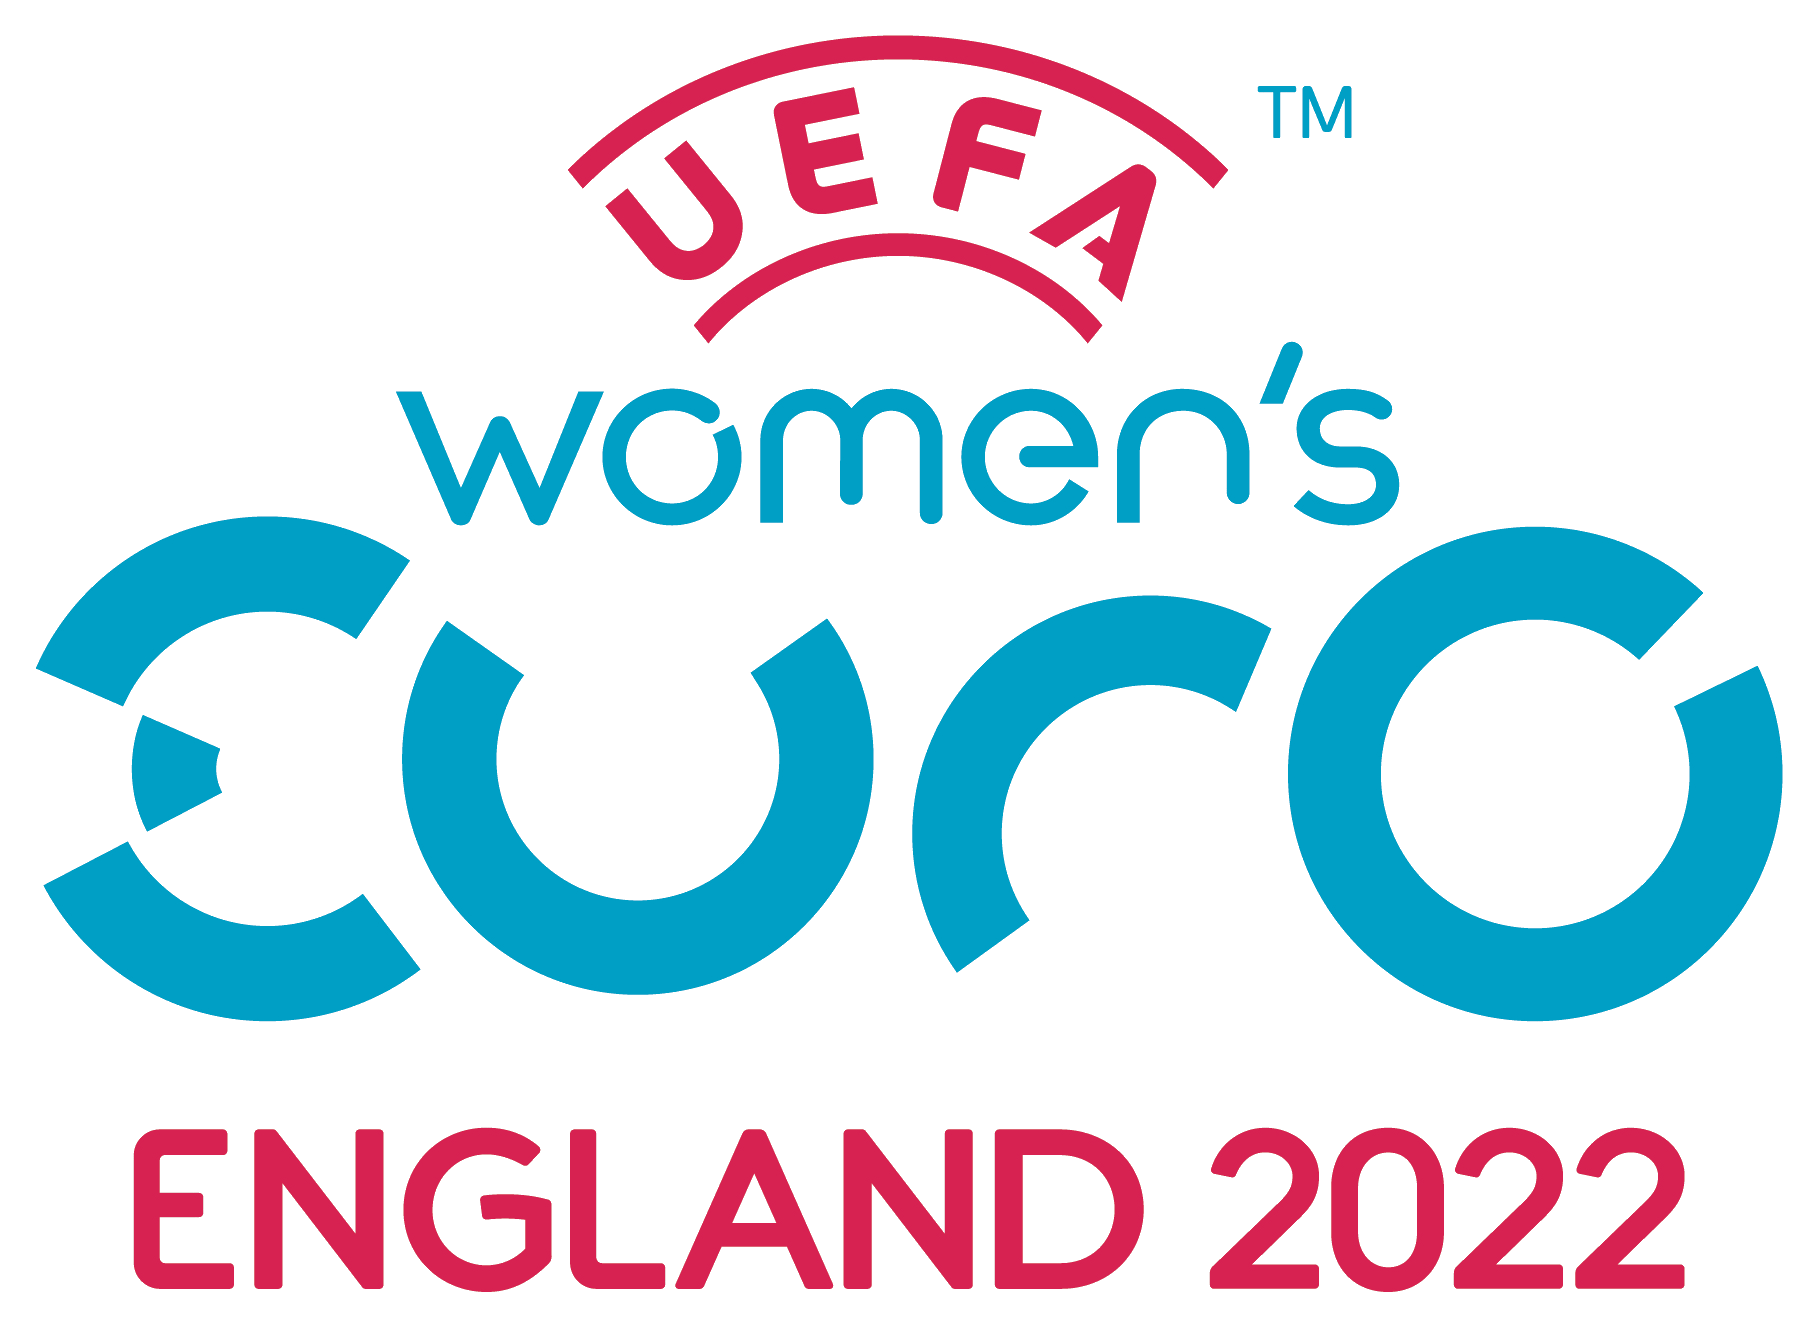 UEFA Women's EURO England 2022 Help Center home page